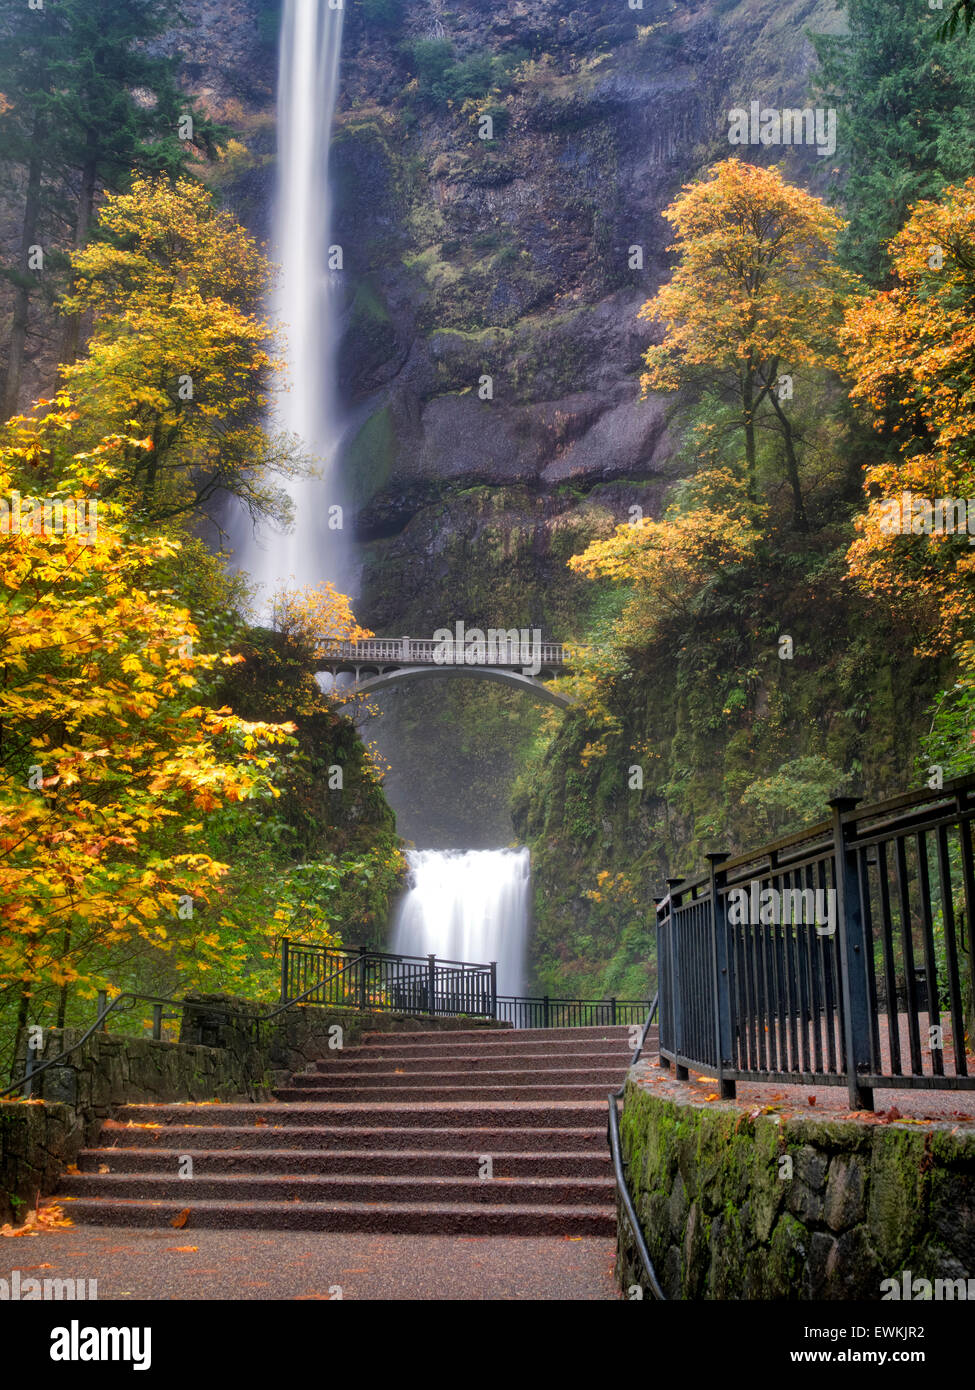 Multnomah Falls with steps and fall color. Columbia River Gorge National Scenic Area, Oregon - Stock Image